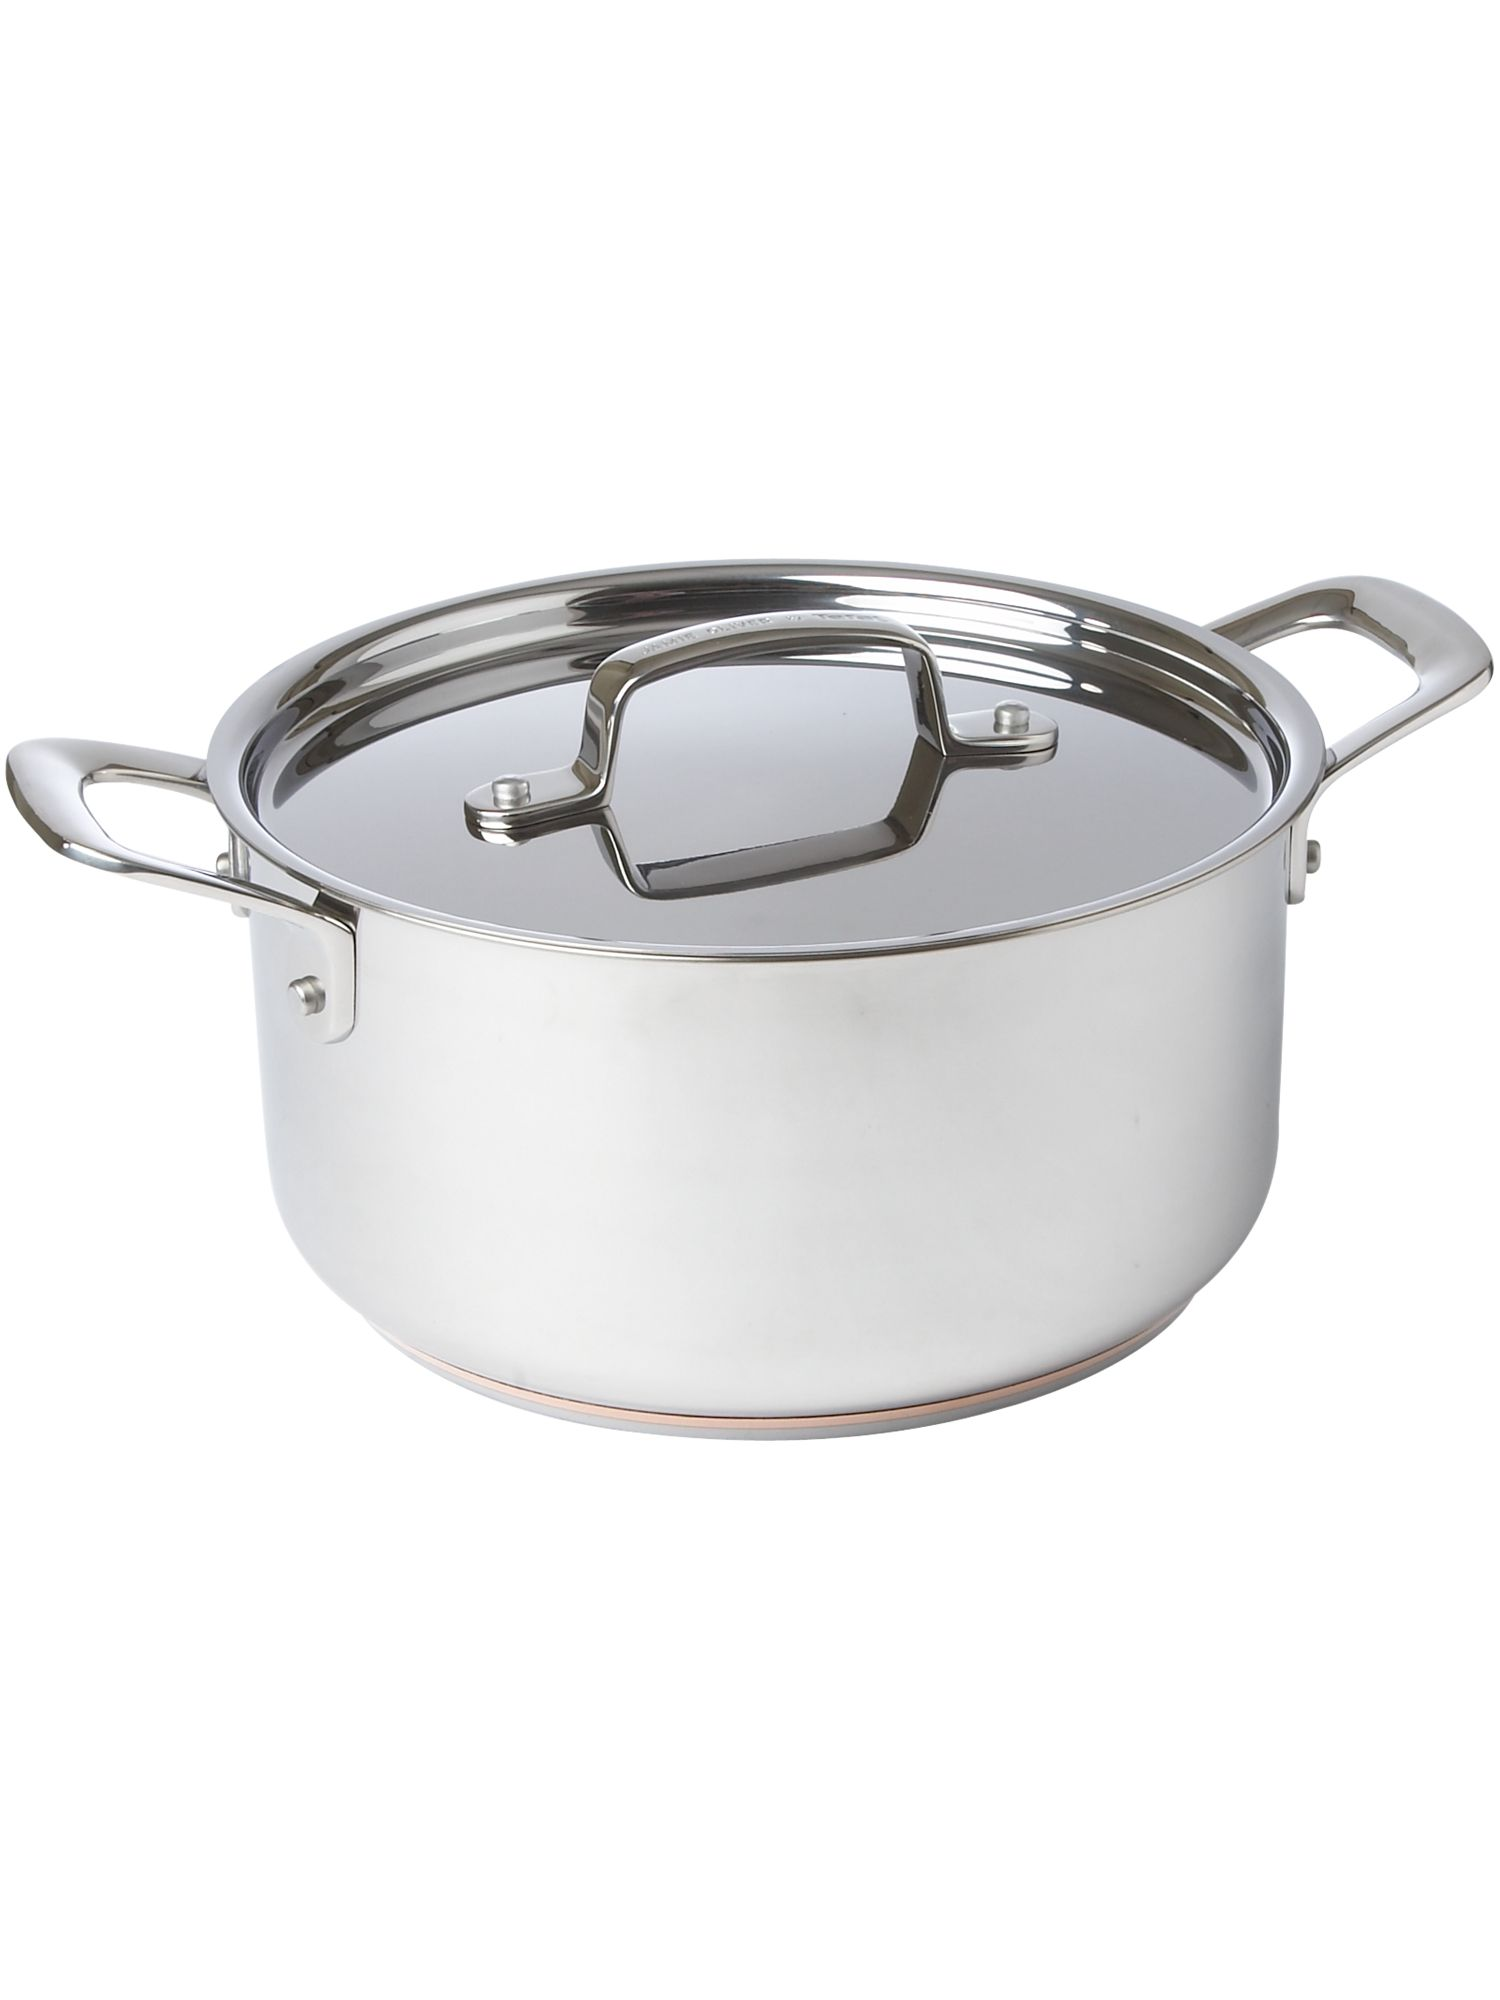 Jamie Oliver Stainless steel 24cm stew pot